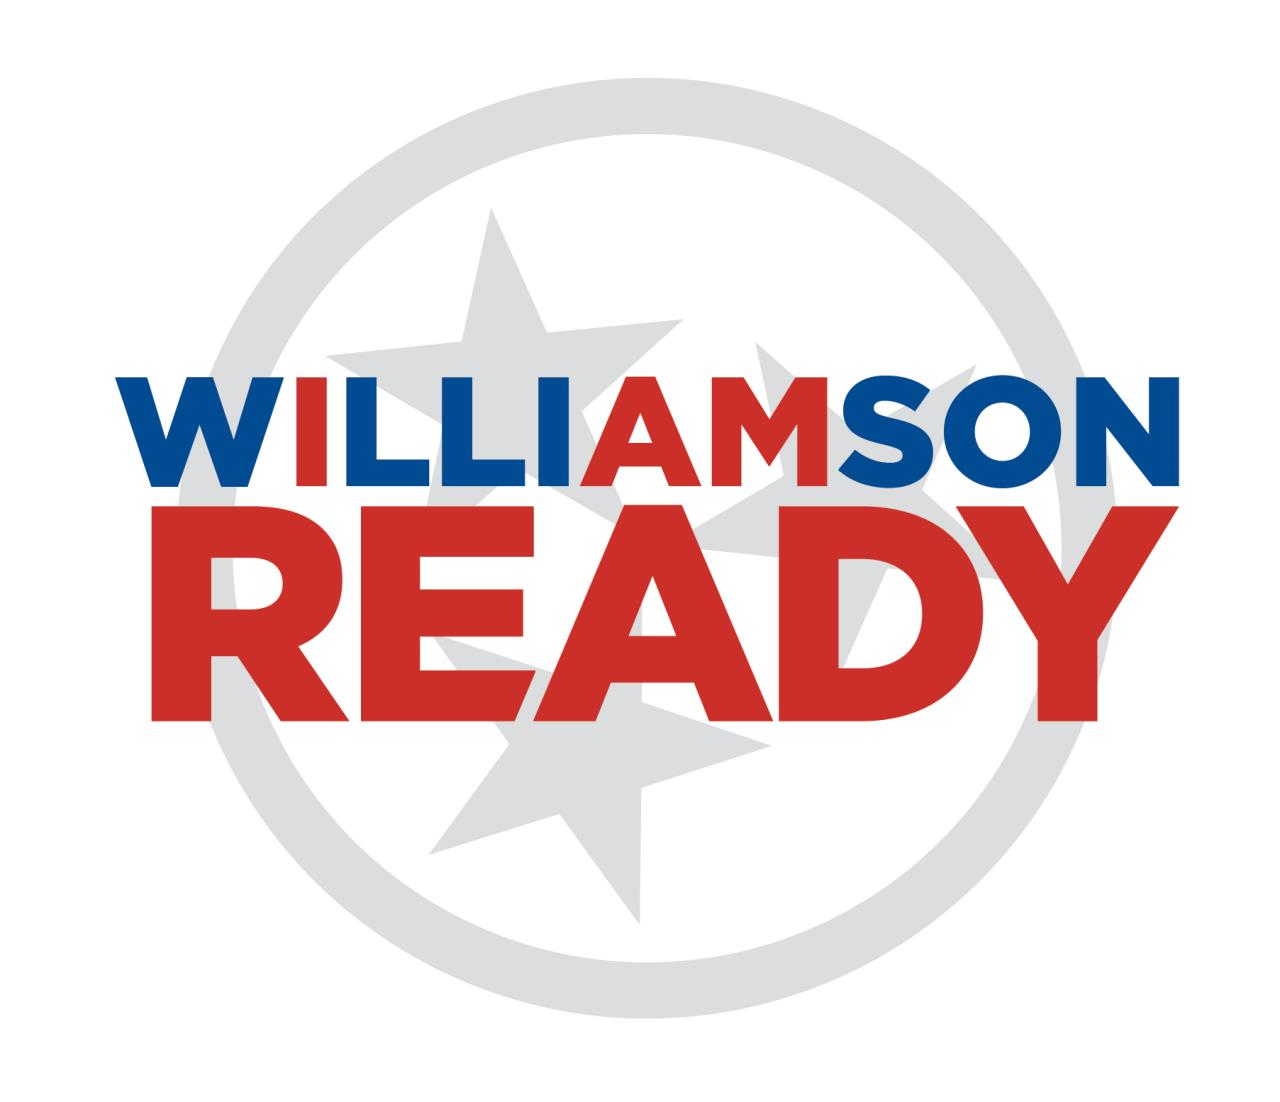 blue and red words that read Williamson ready